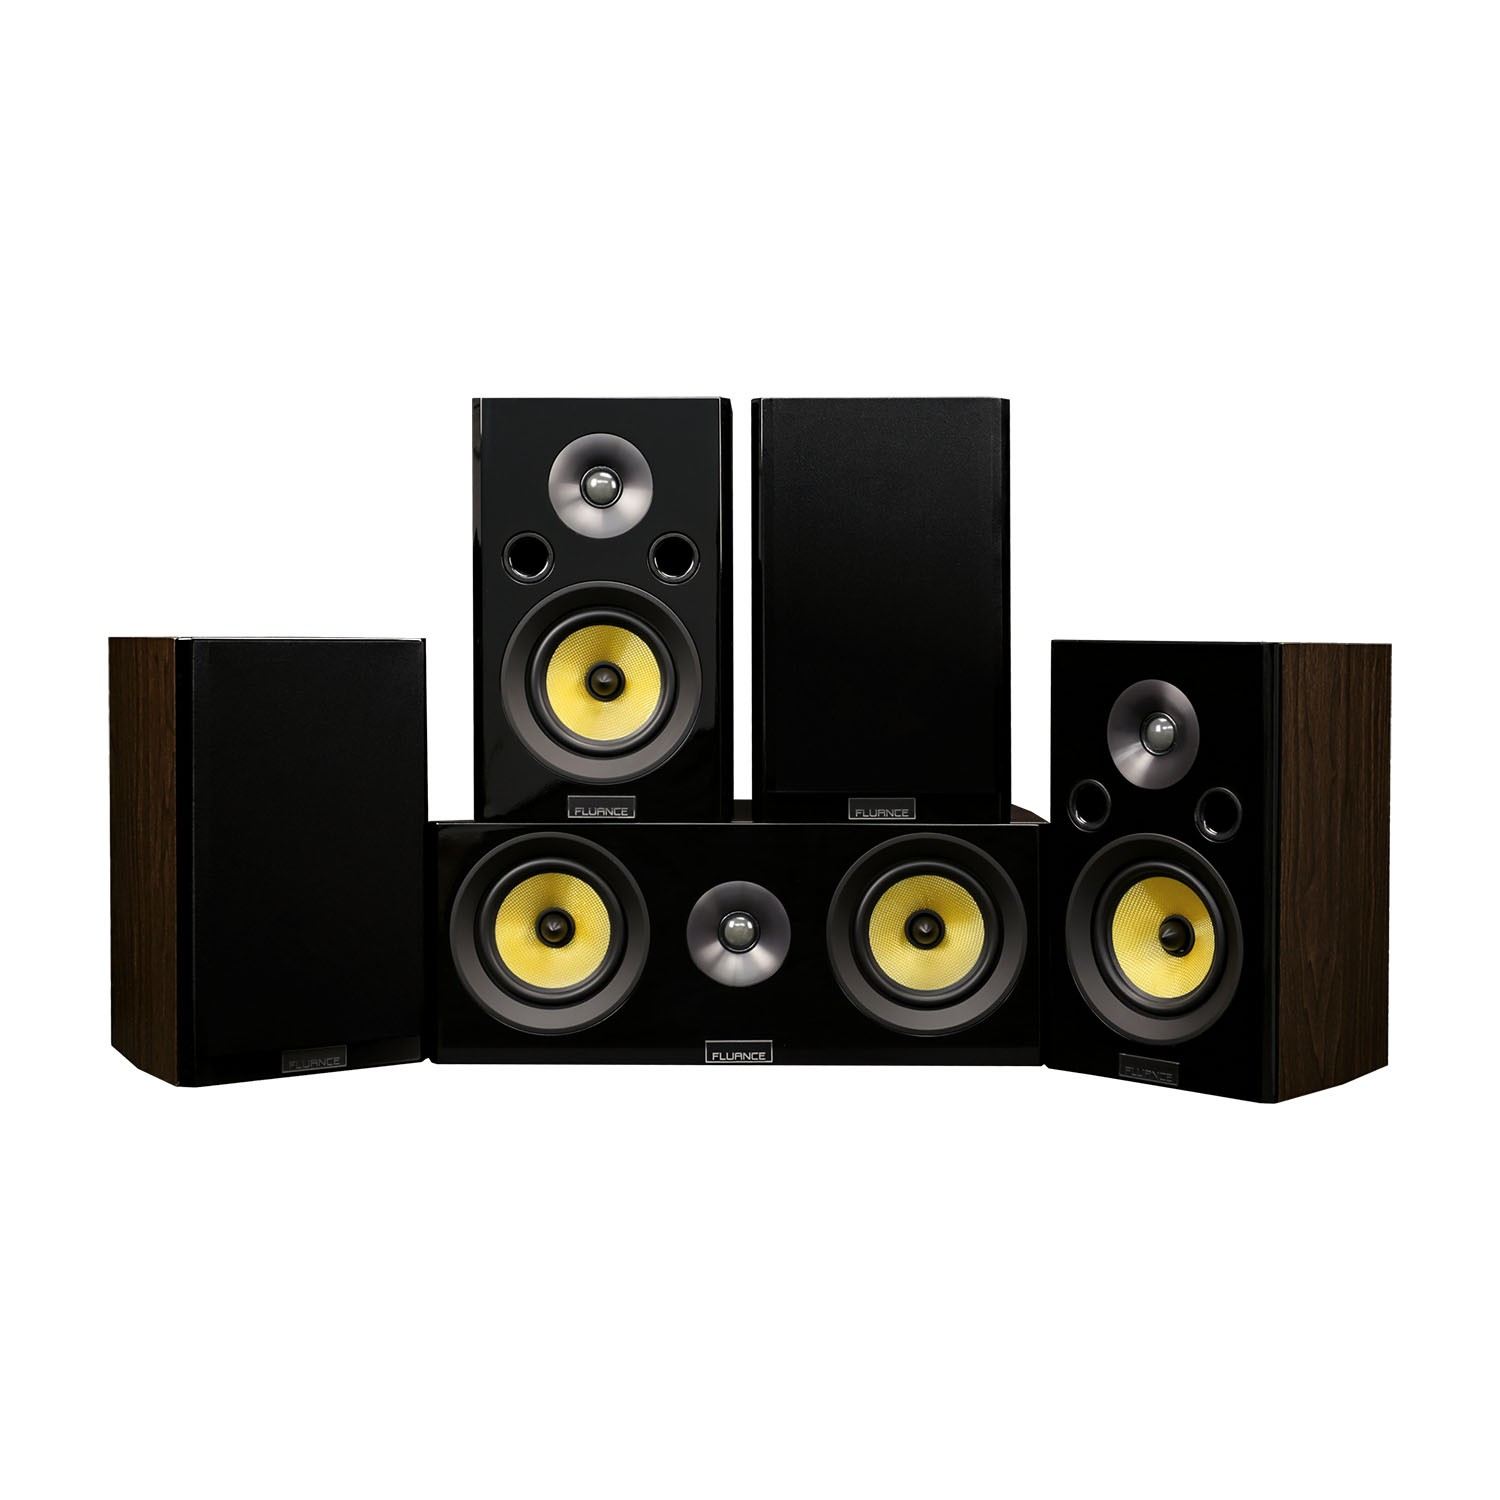 Best Kitchen Gallery: Signature Series Hi Fi 5 0 Home Theater Speaker System With of Home Theater Audio on rachelxblog.com